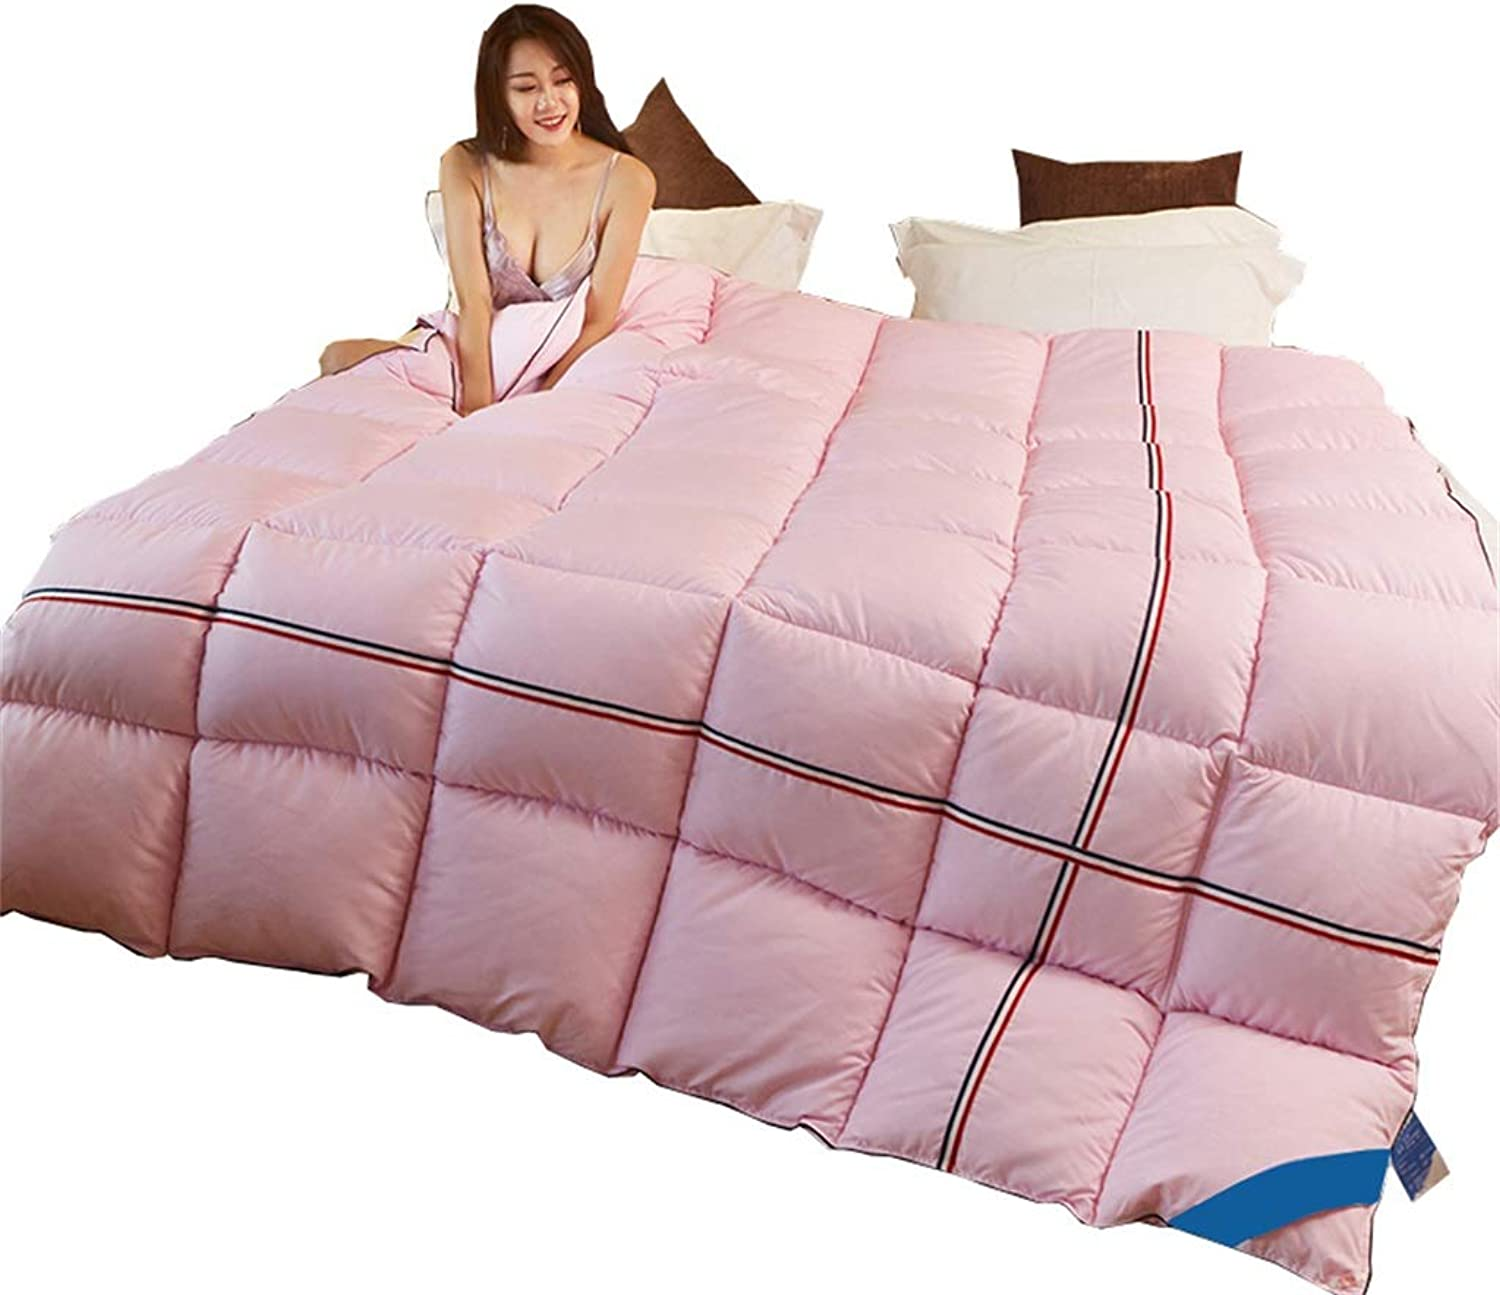 Pink Quilt Thicken Warm Soft Seasons Double All-Season Quilted Comforte Rhypoallergenic Quilted Comforter Corner Tabs (Size   180cmx220cm3kg)